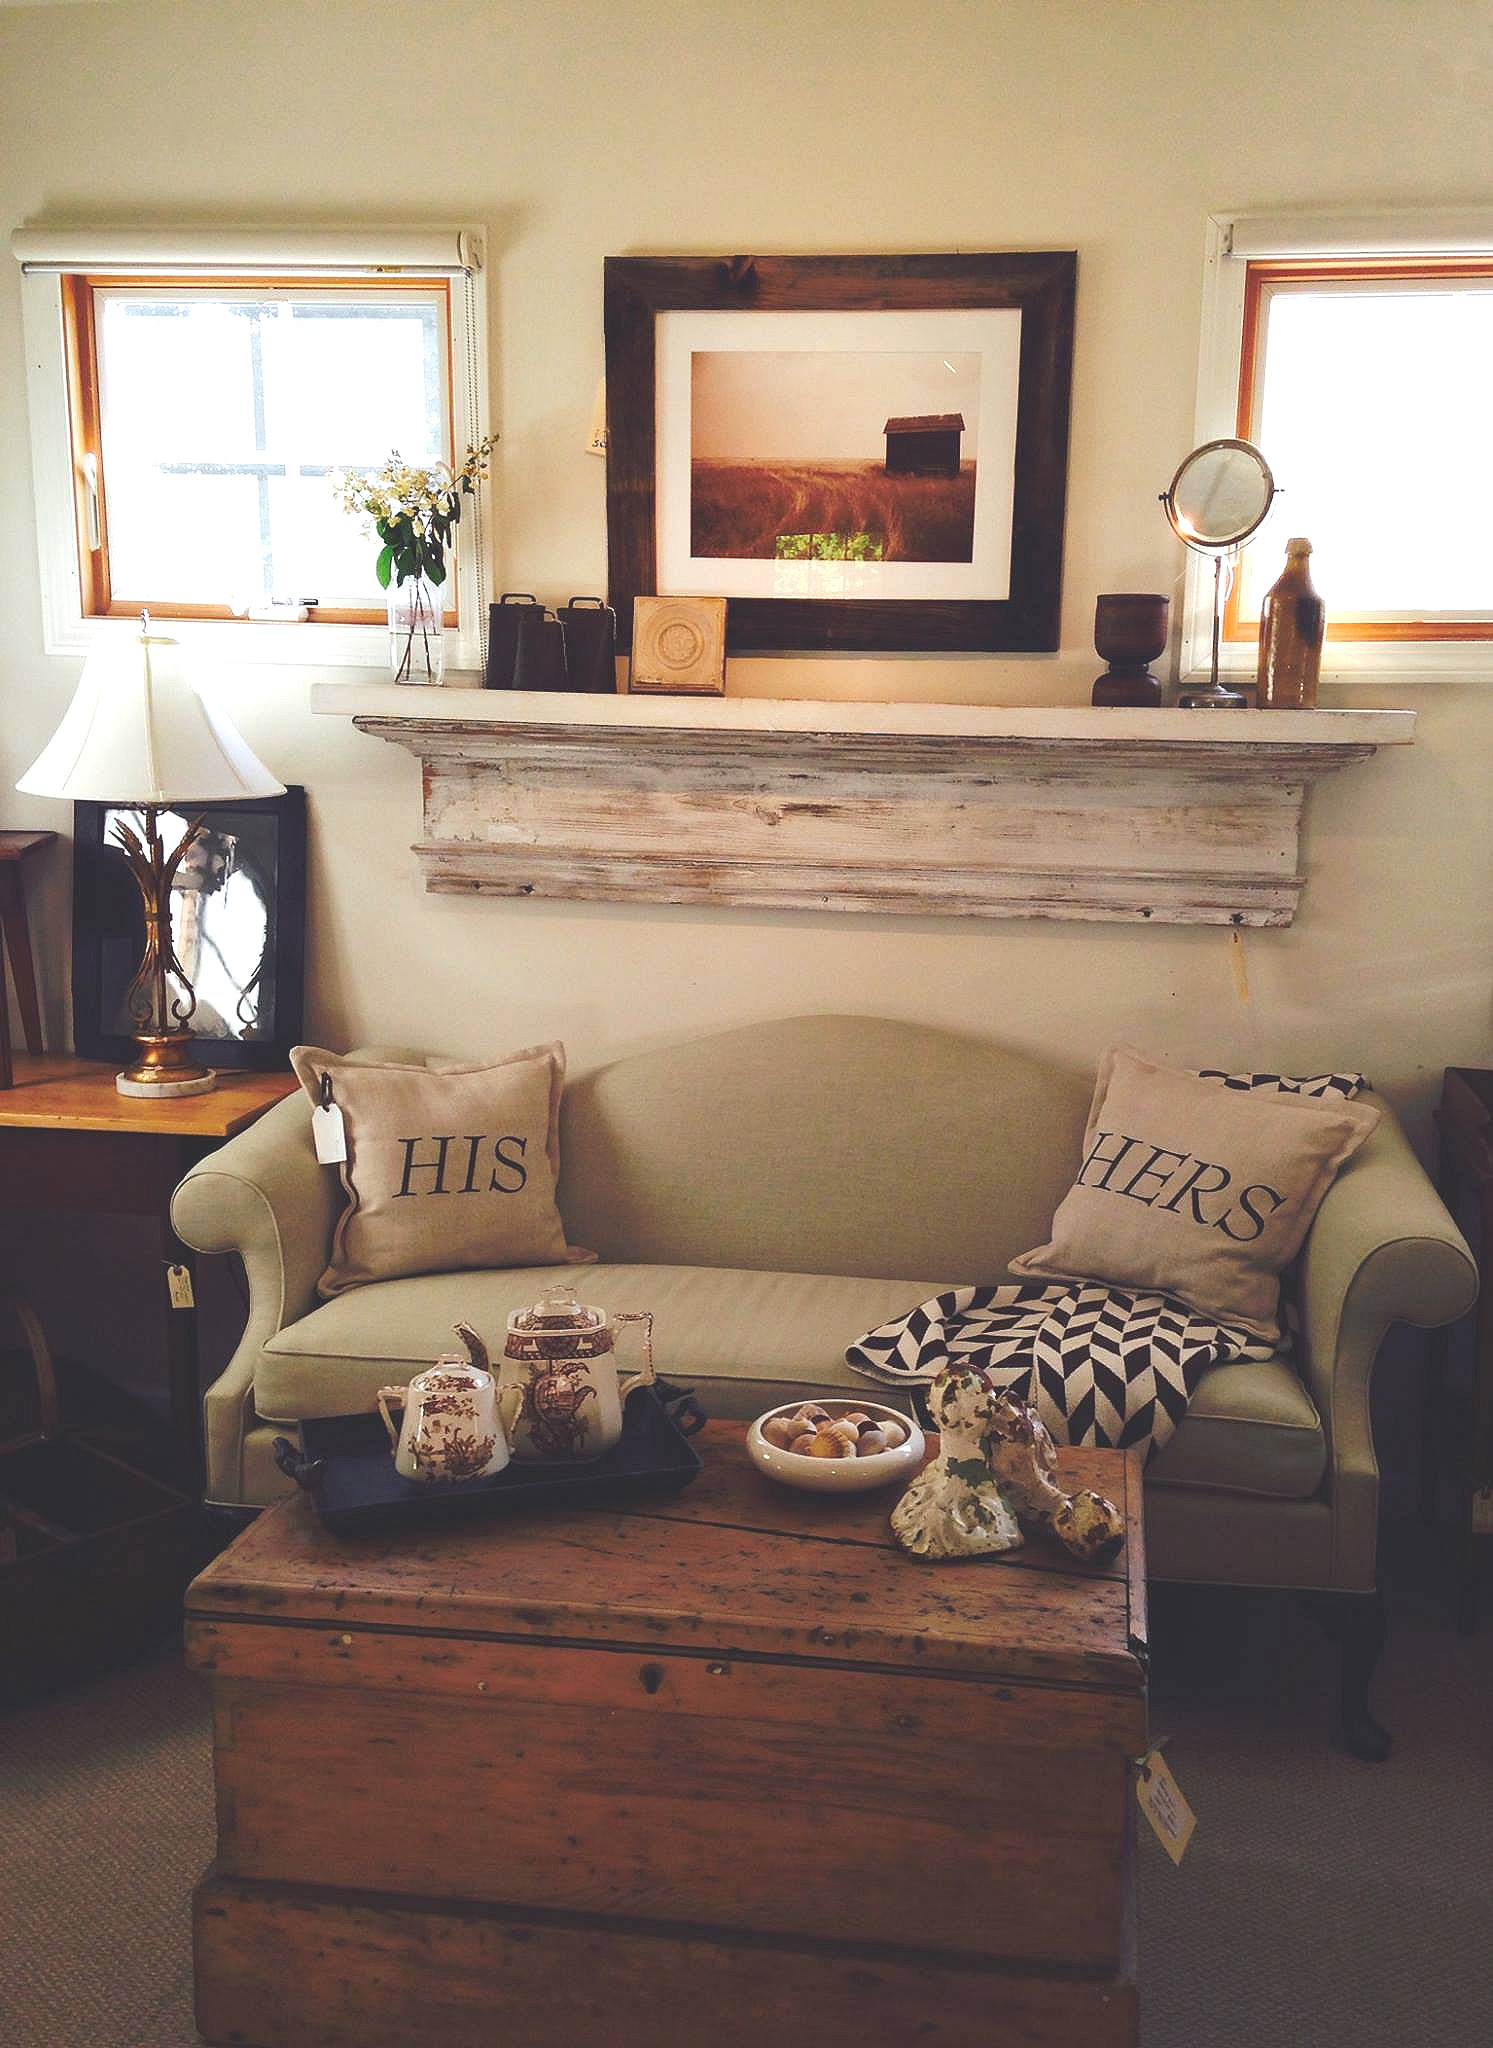 We brought this classic vintage Chippendale style love seat into the 21st century by recovering it in natural linen. It pairs prefectly with the warm patina of a well used antique pine tool trunk. Martin custom framed the contemporary sepia farm photograph in weathered barn wood.